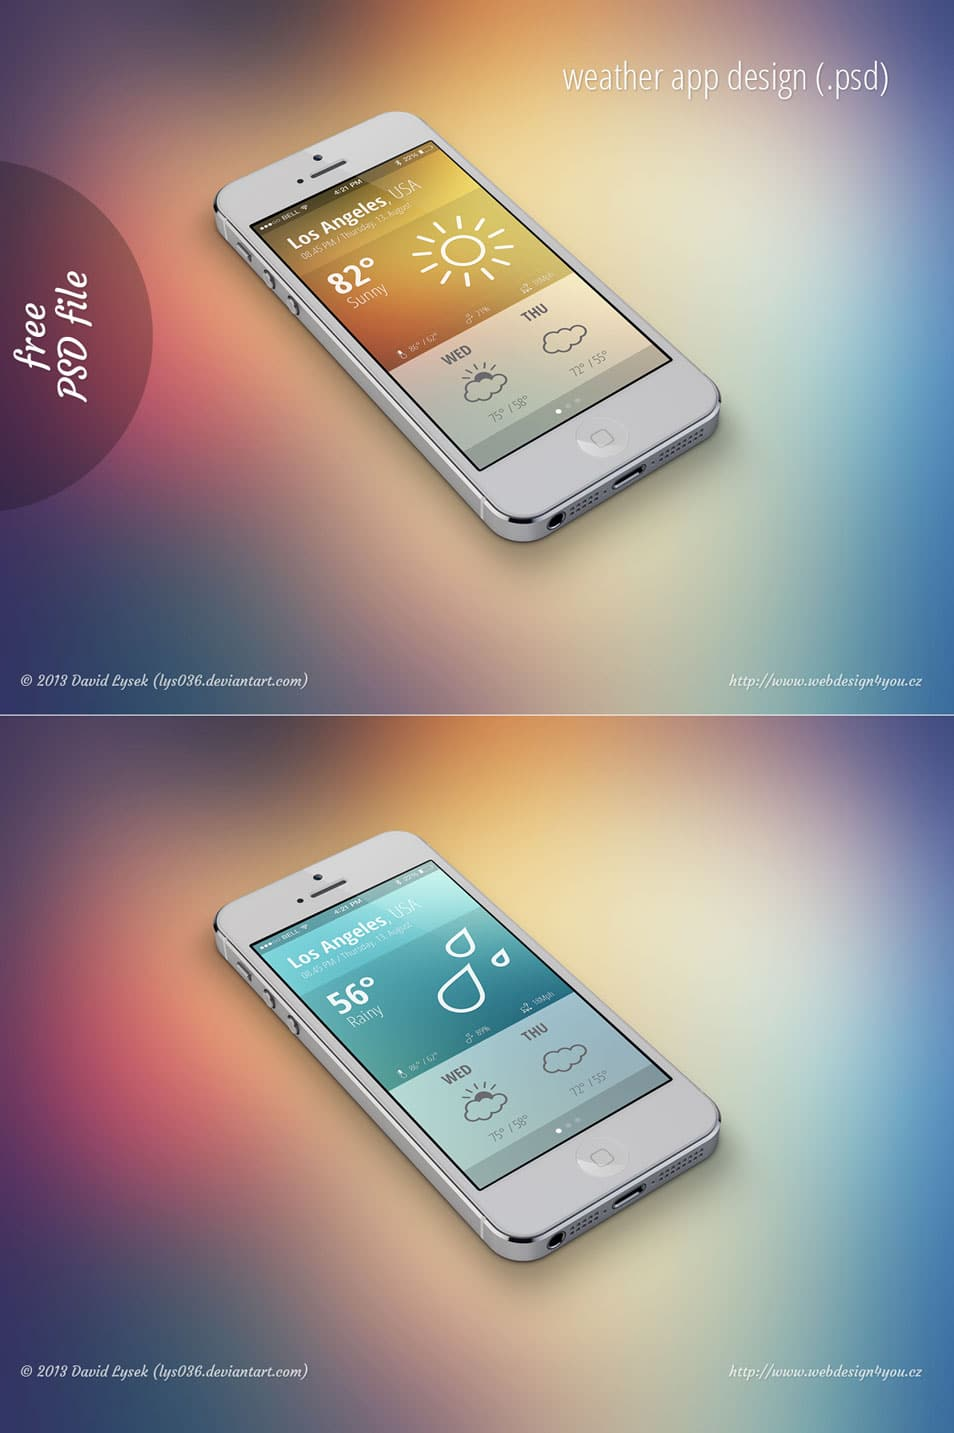 iOS 7 Style Weather App GUI PSD